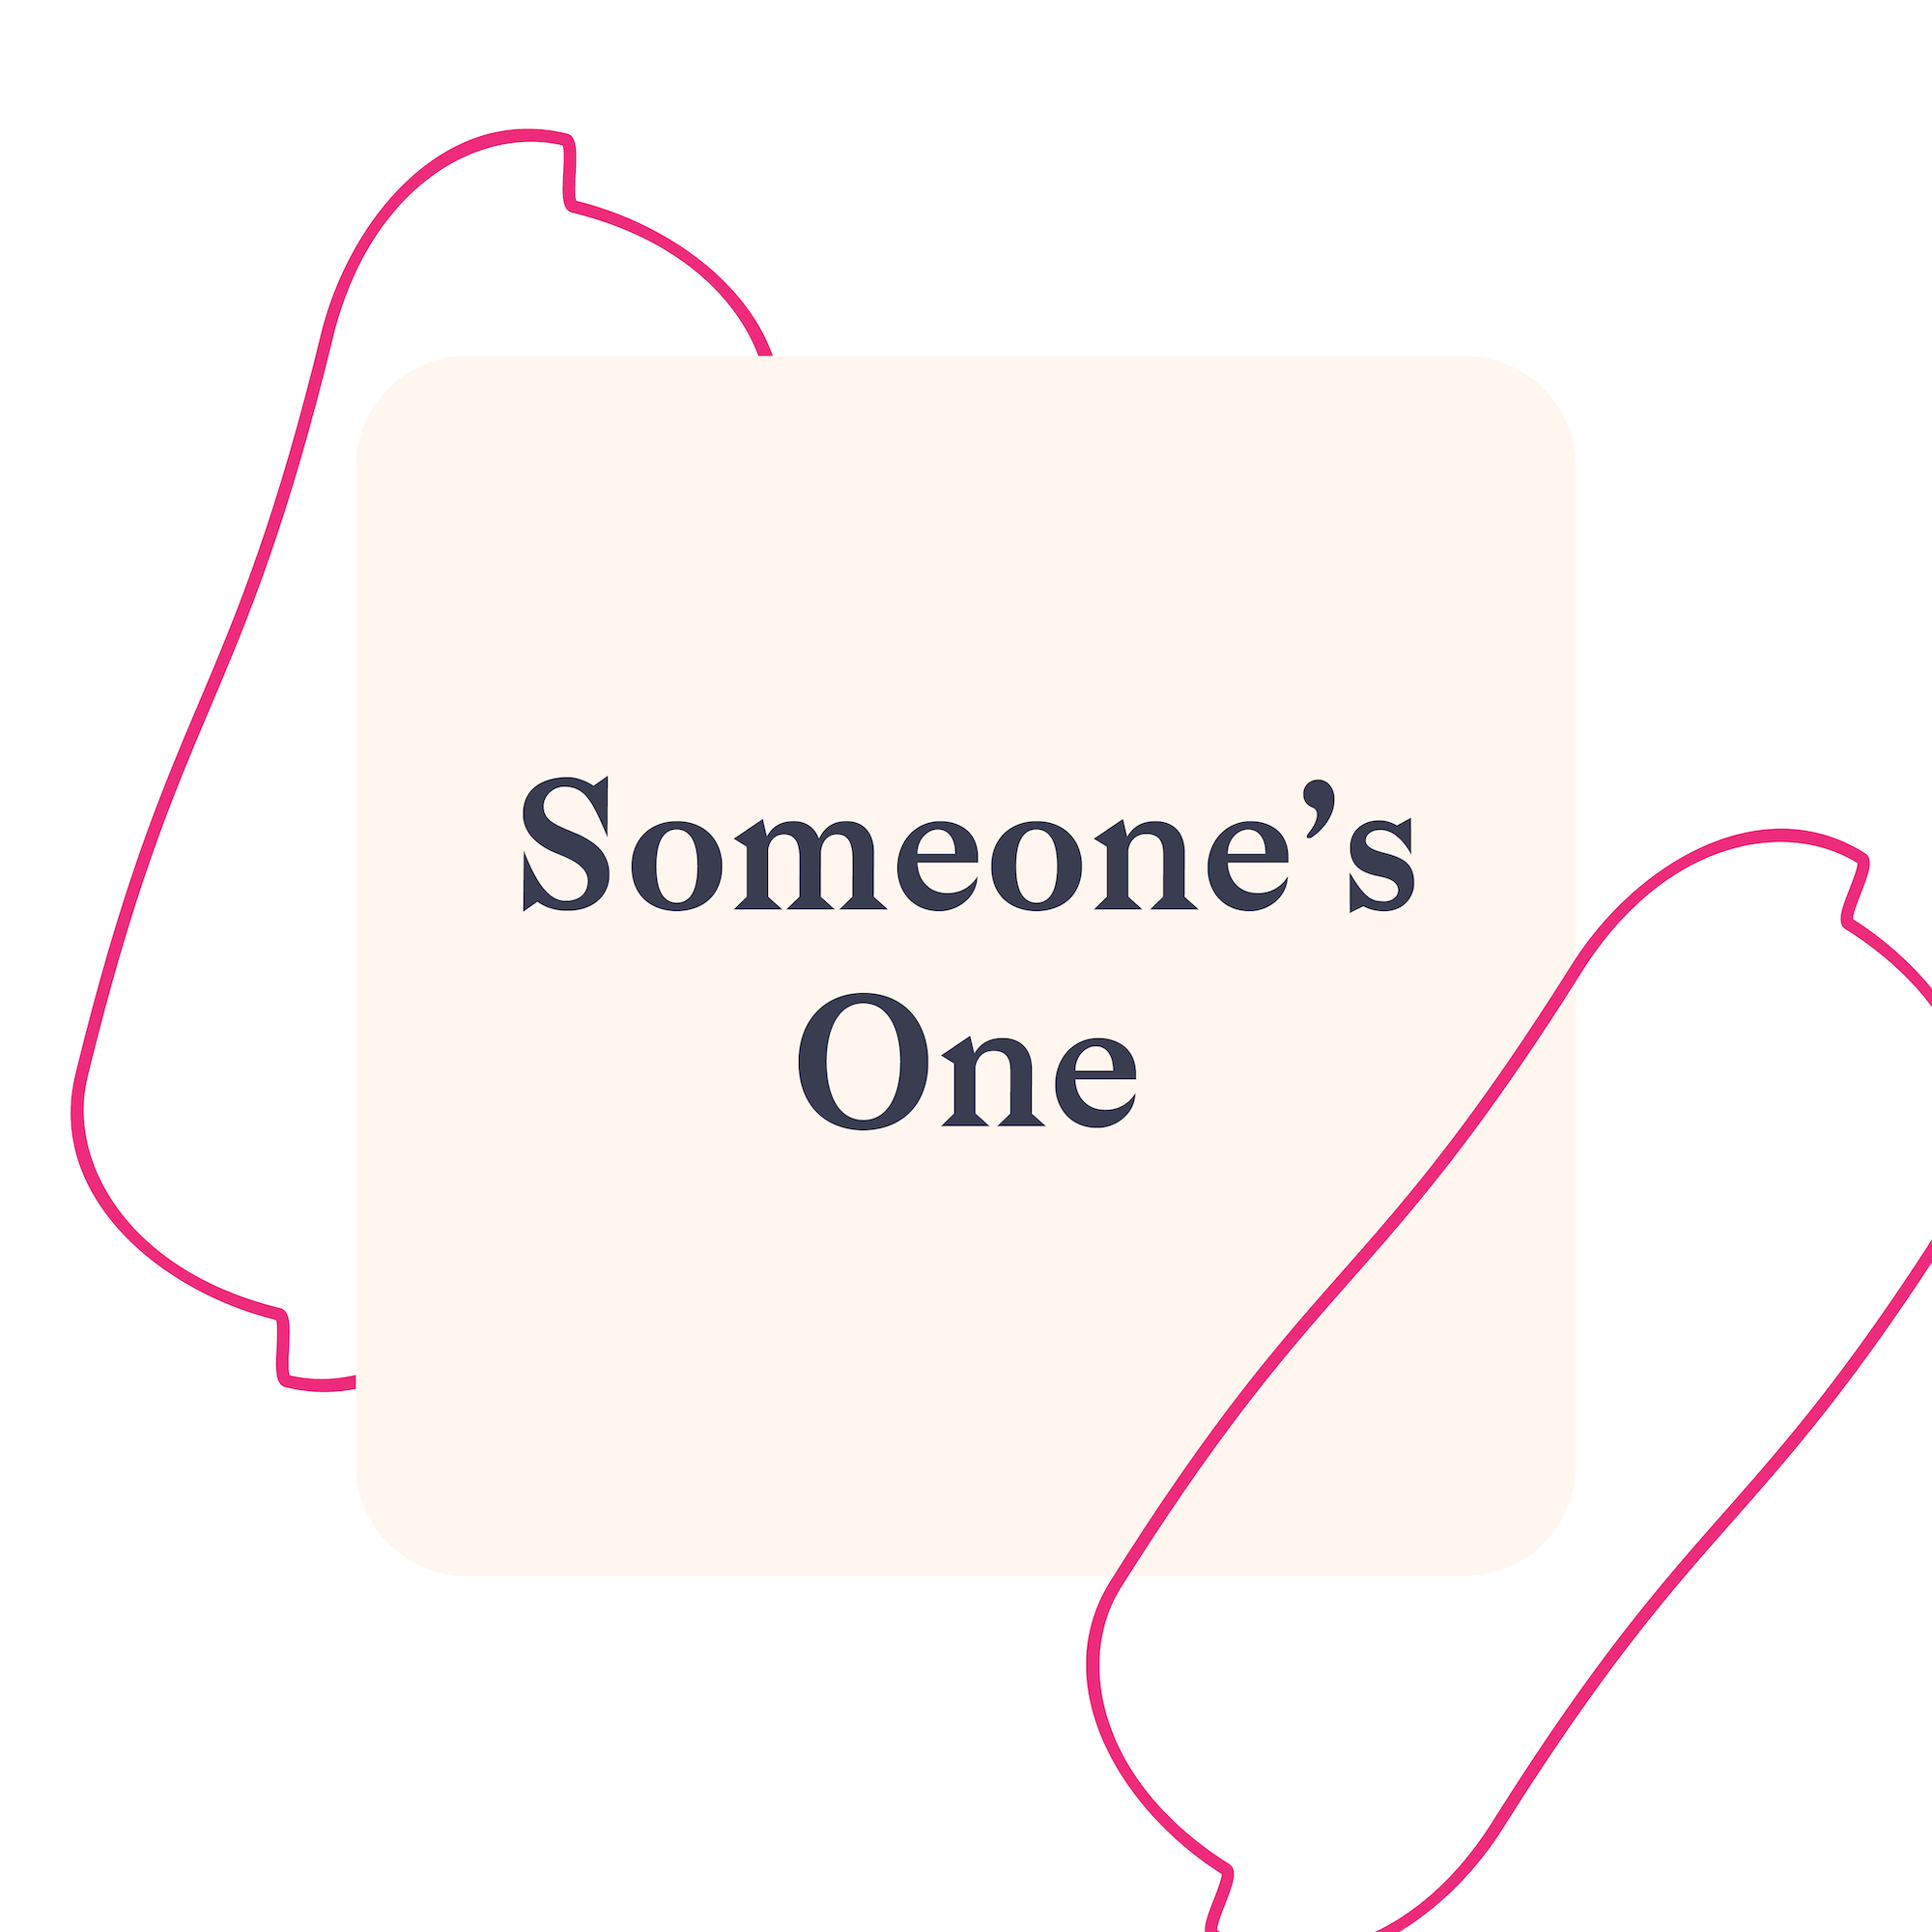 Someone's One! - Tuesdays at 7:30 pm with Marcella Kelson